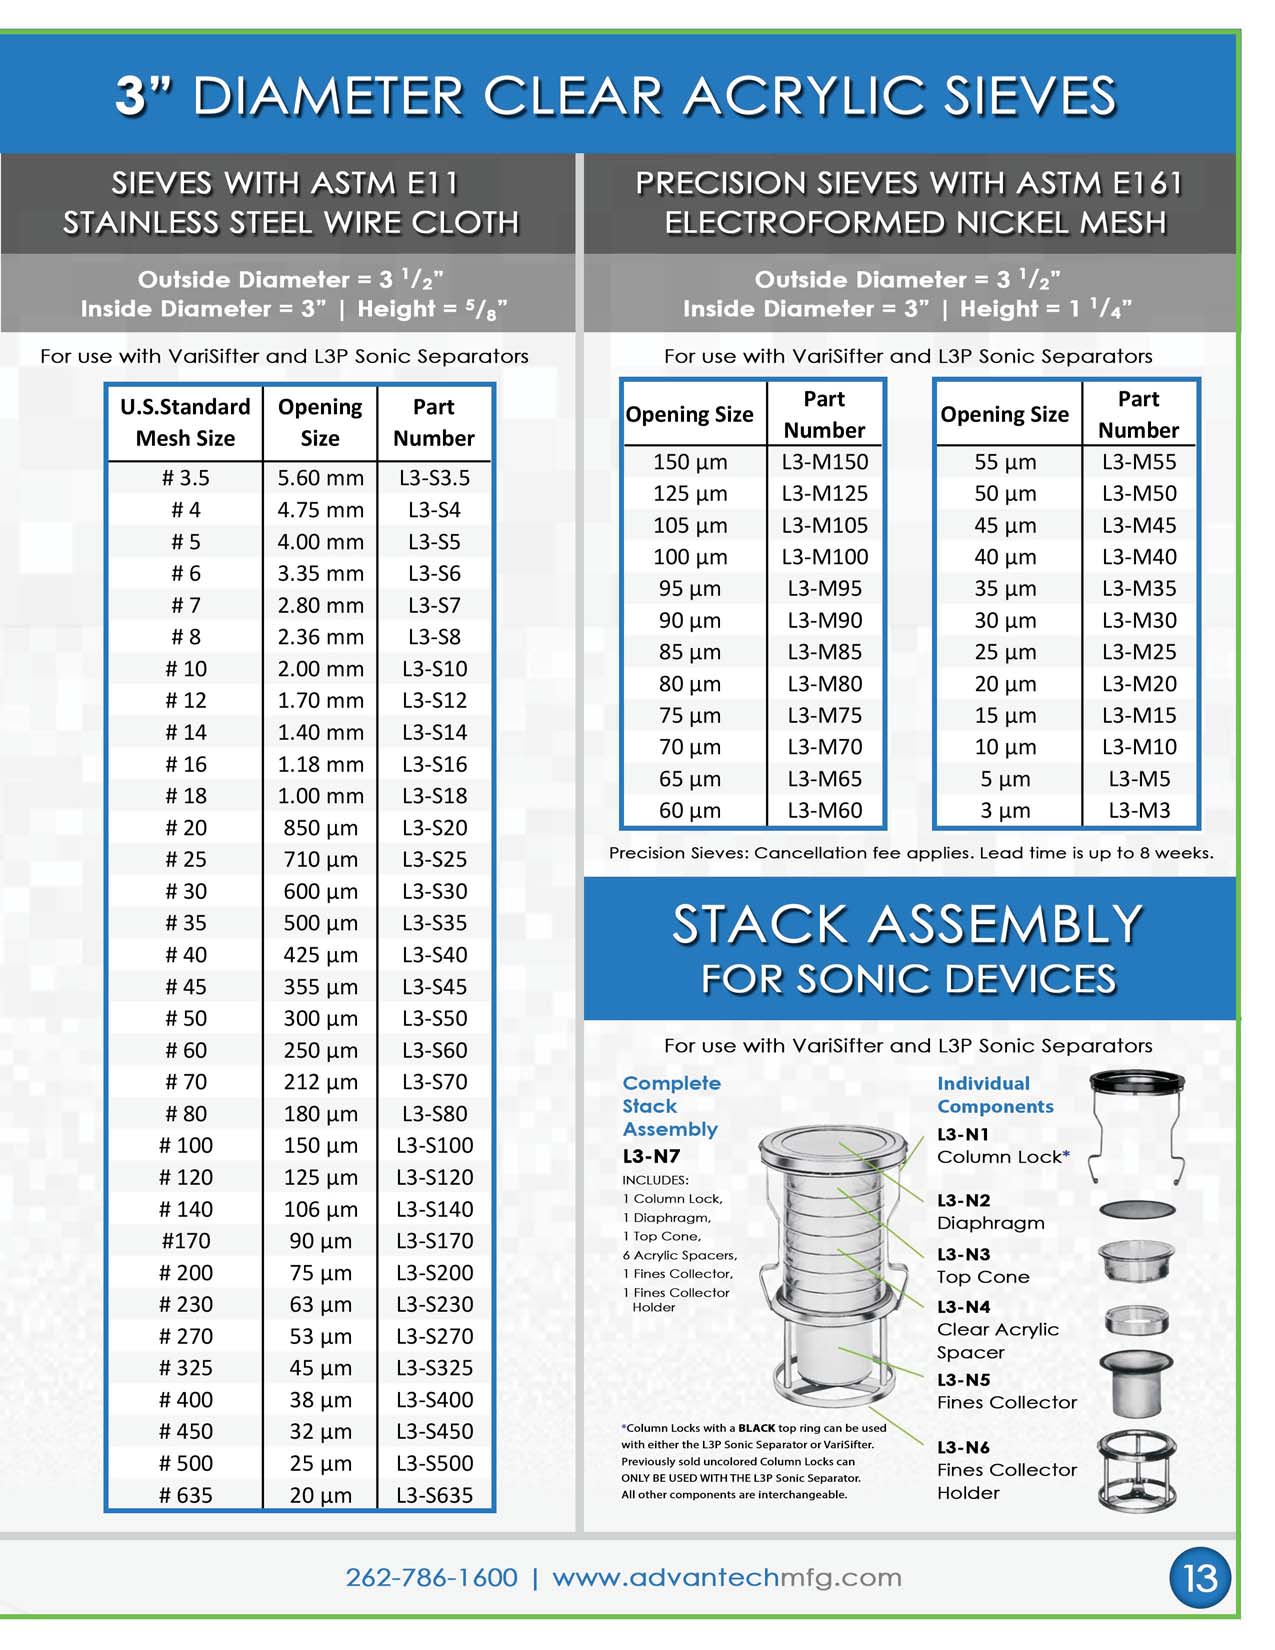 advantech-sieves-and-shakers-catalog-2020-page-15.jpg